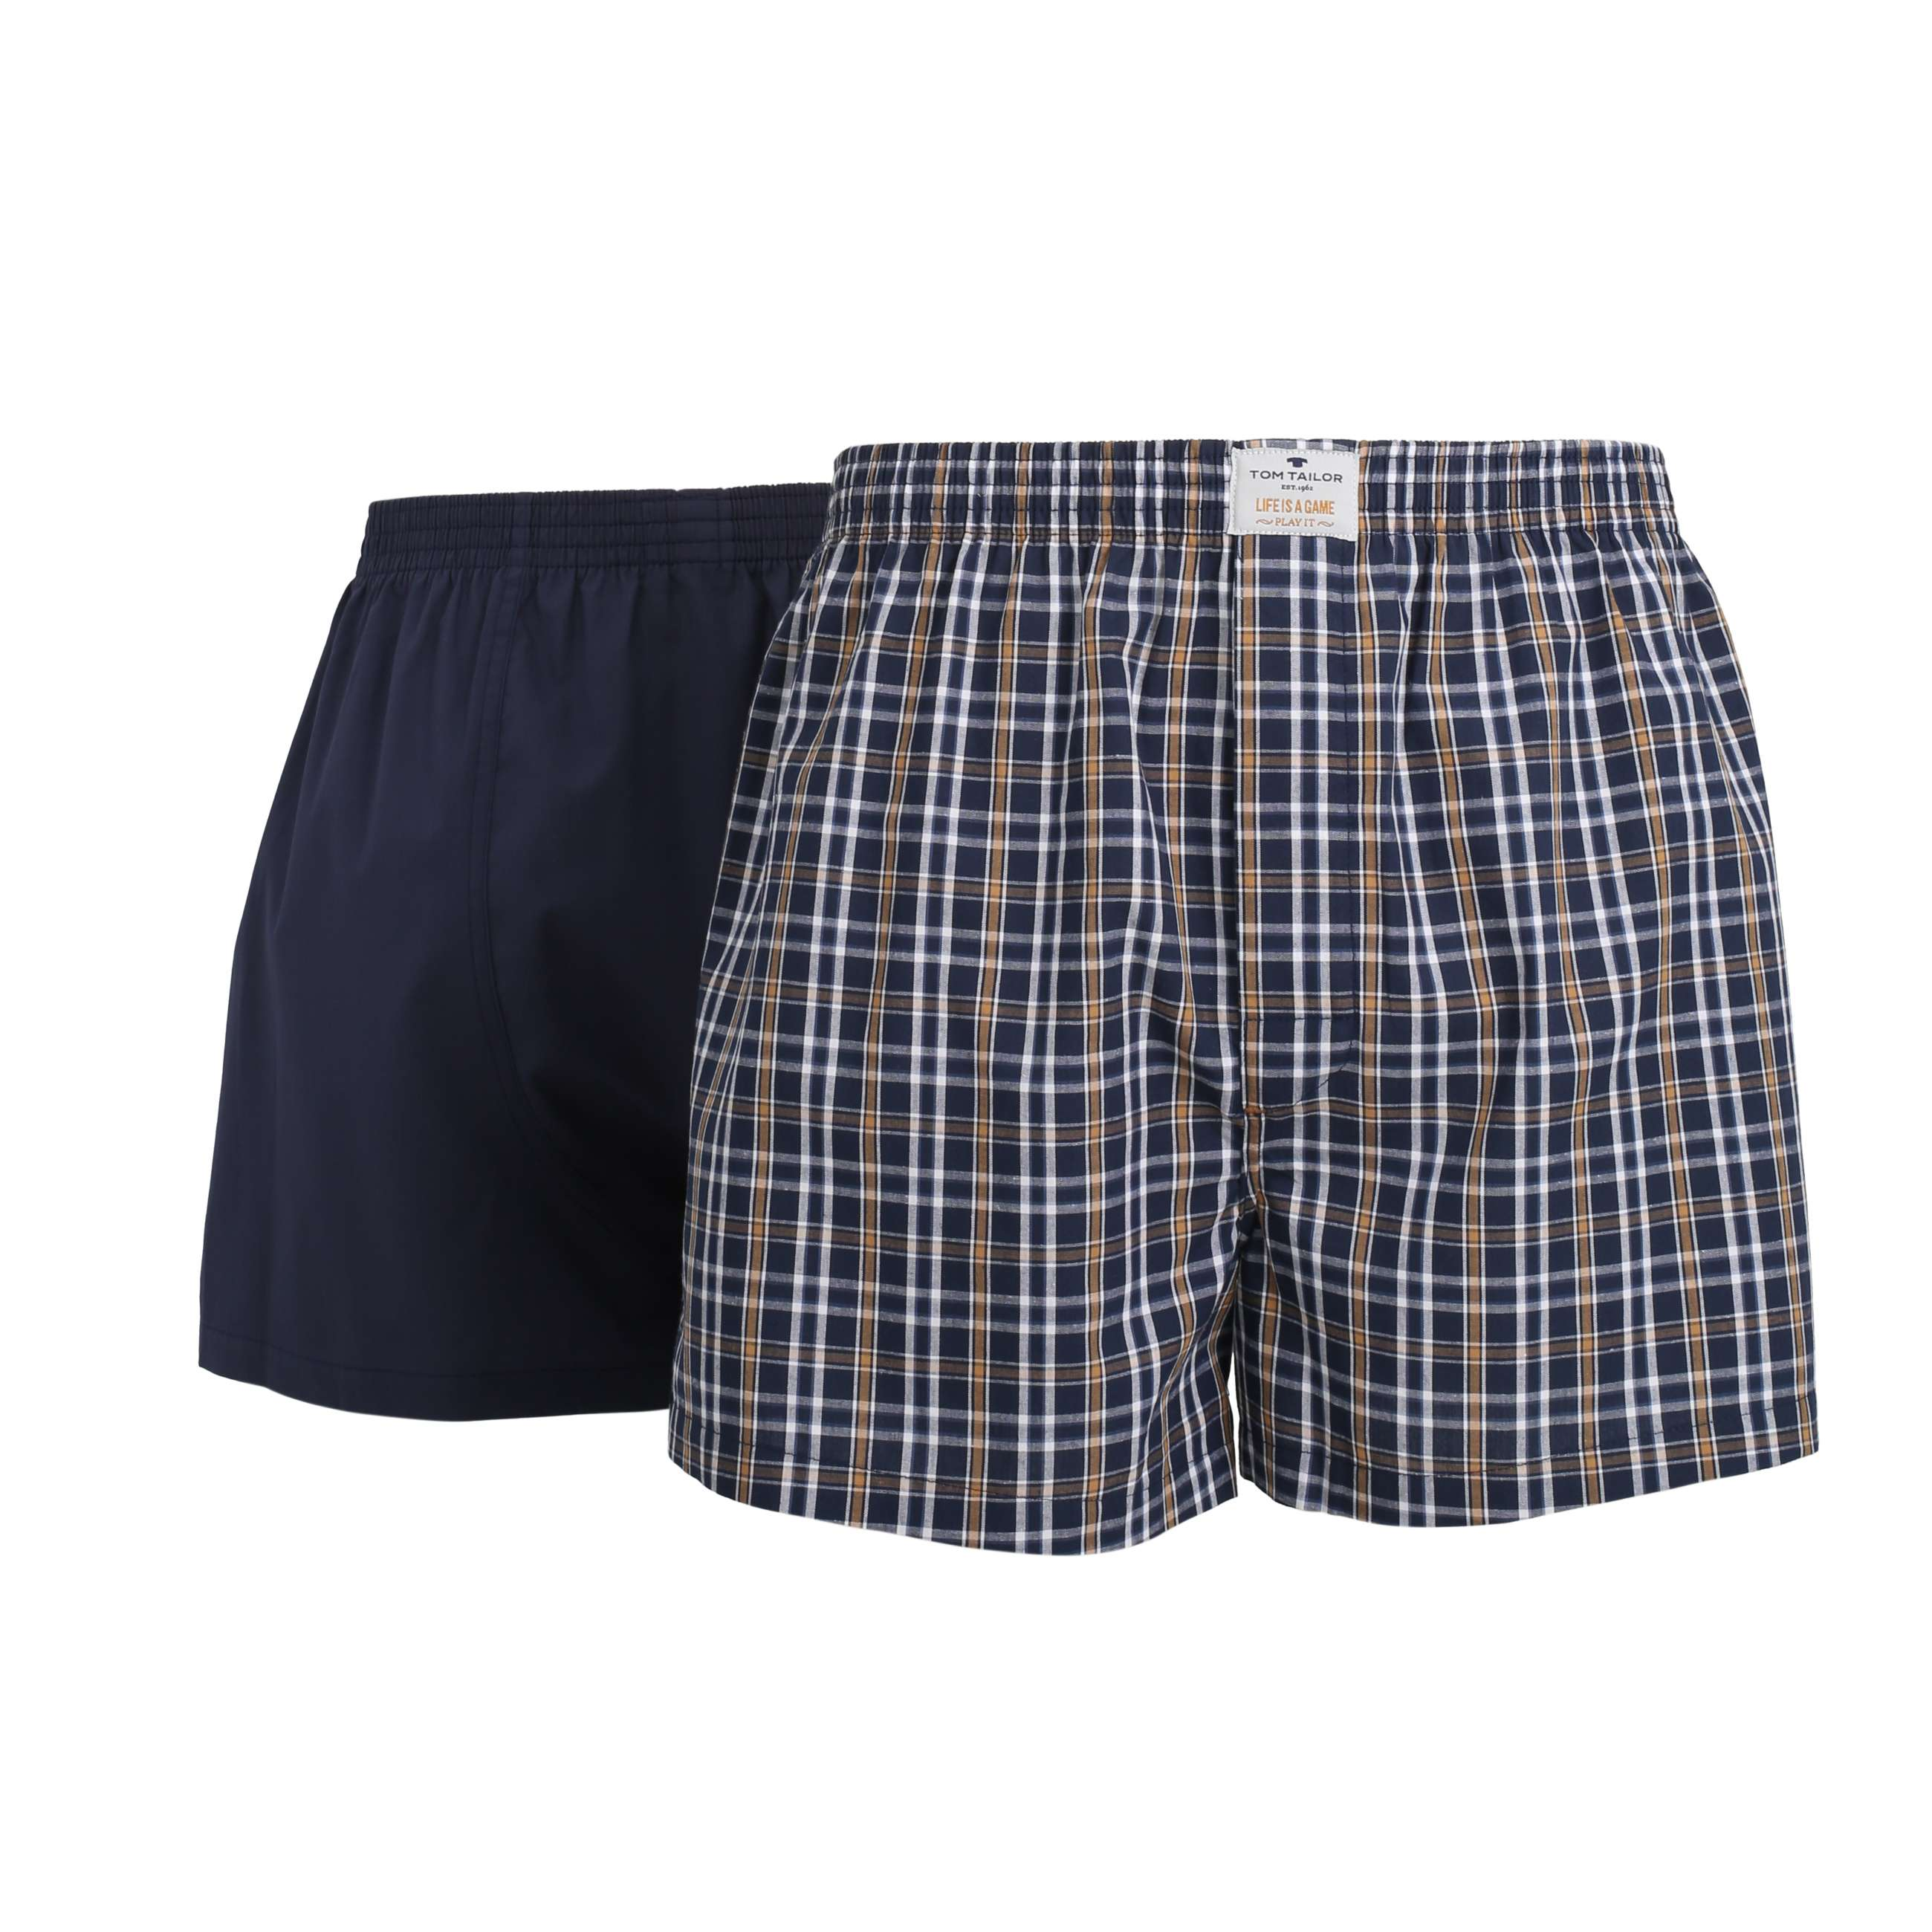 tom tailor herren boxershort unterhose kariert 2er pack. Black Bedroom Furniture Sets. Home Design Ideas